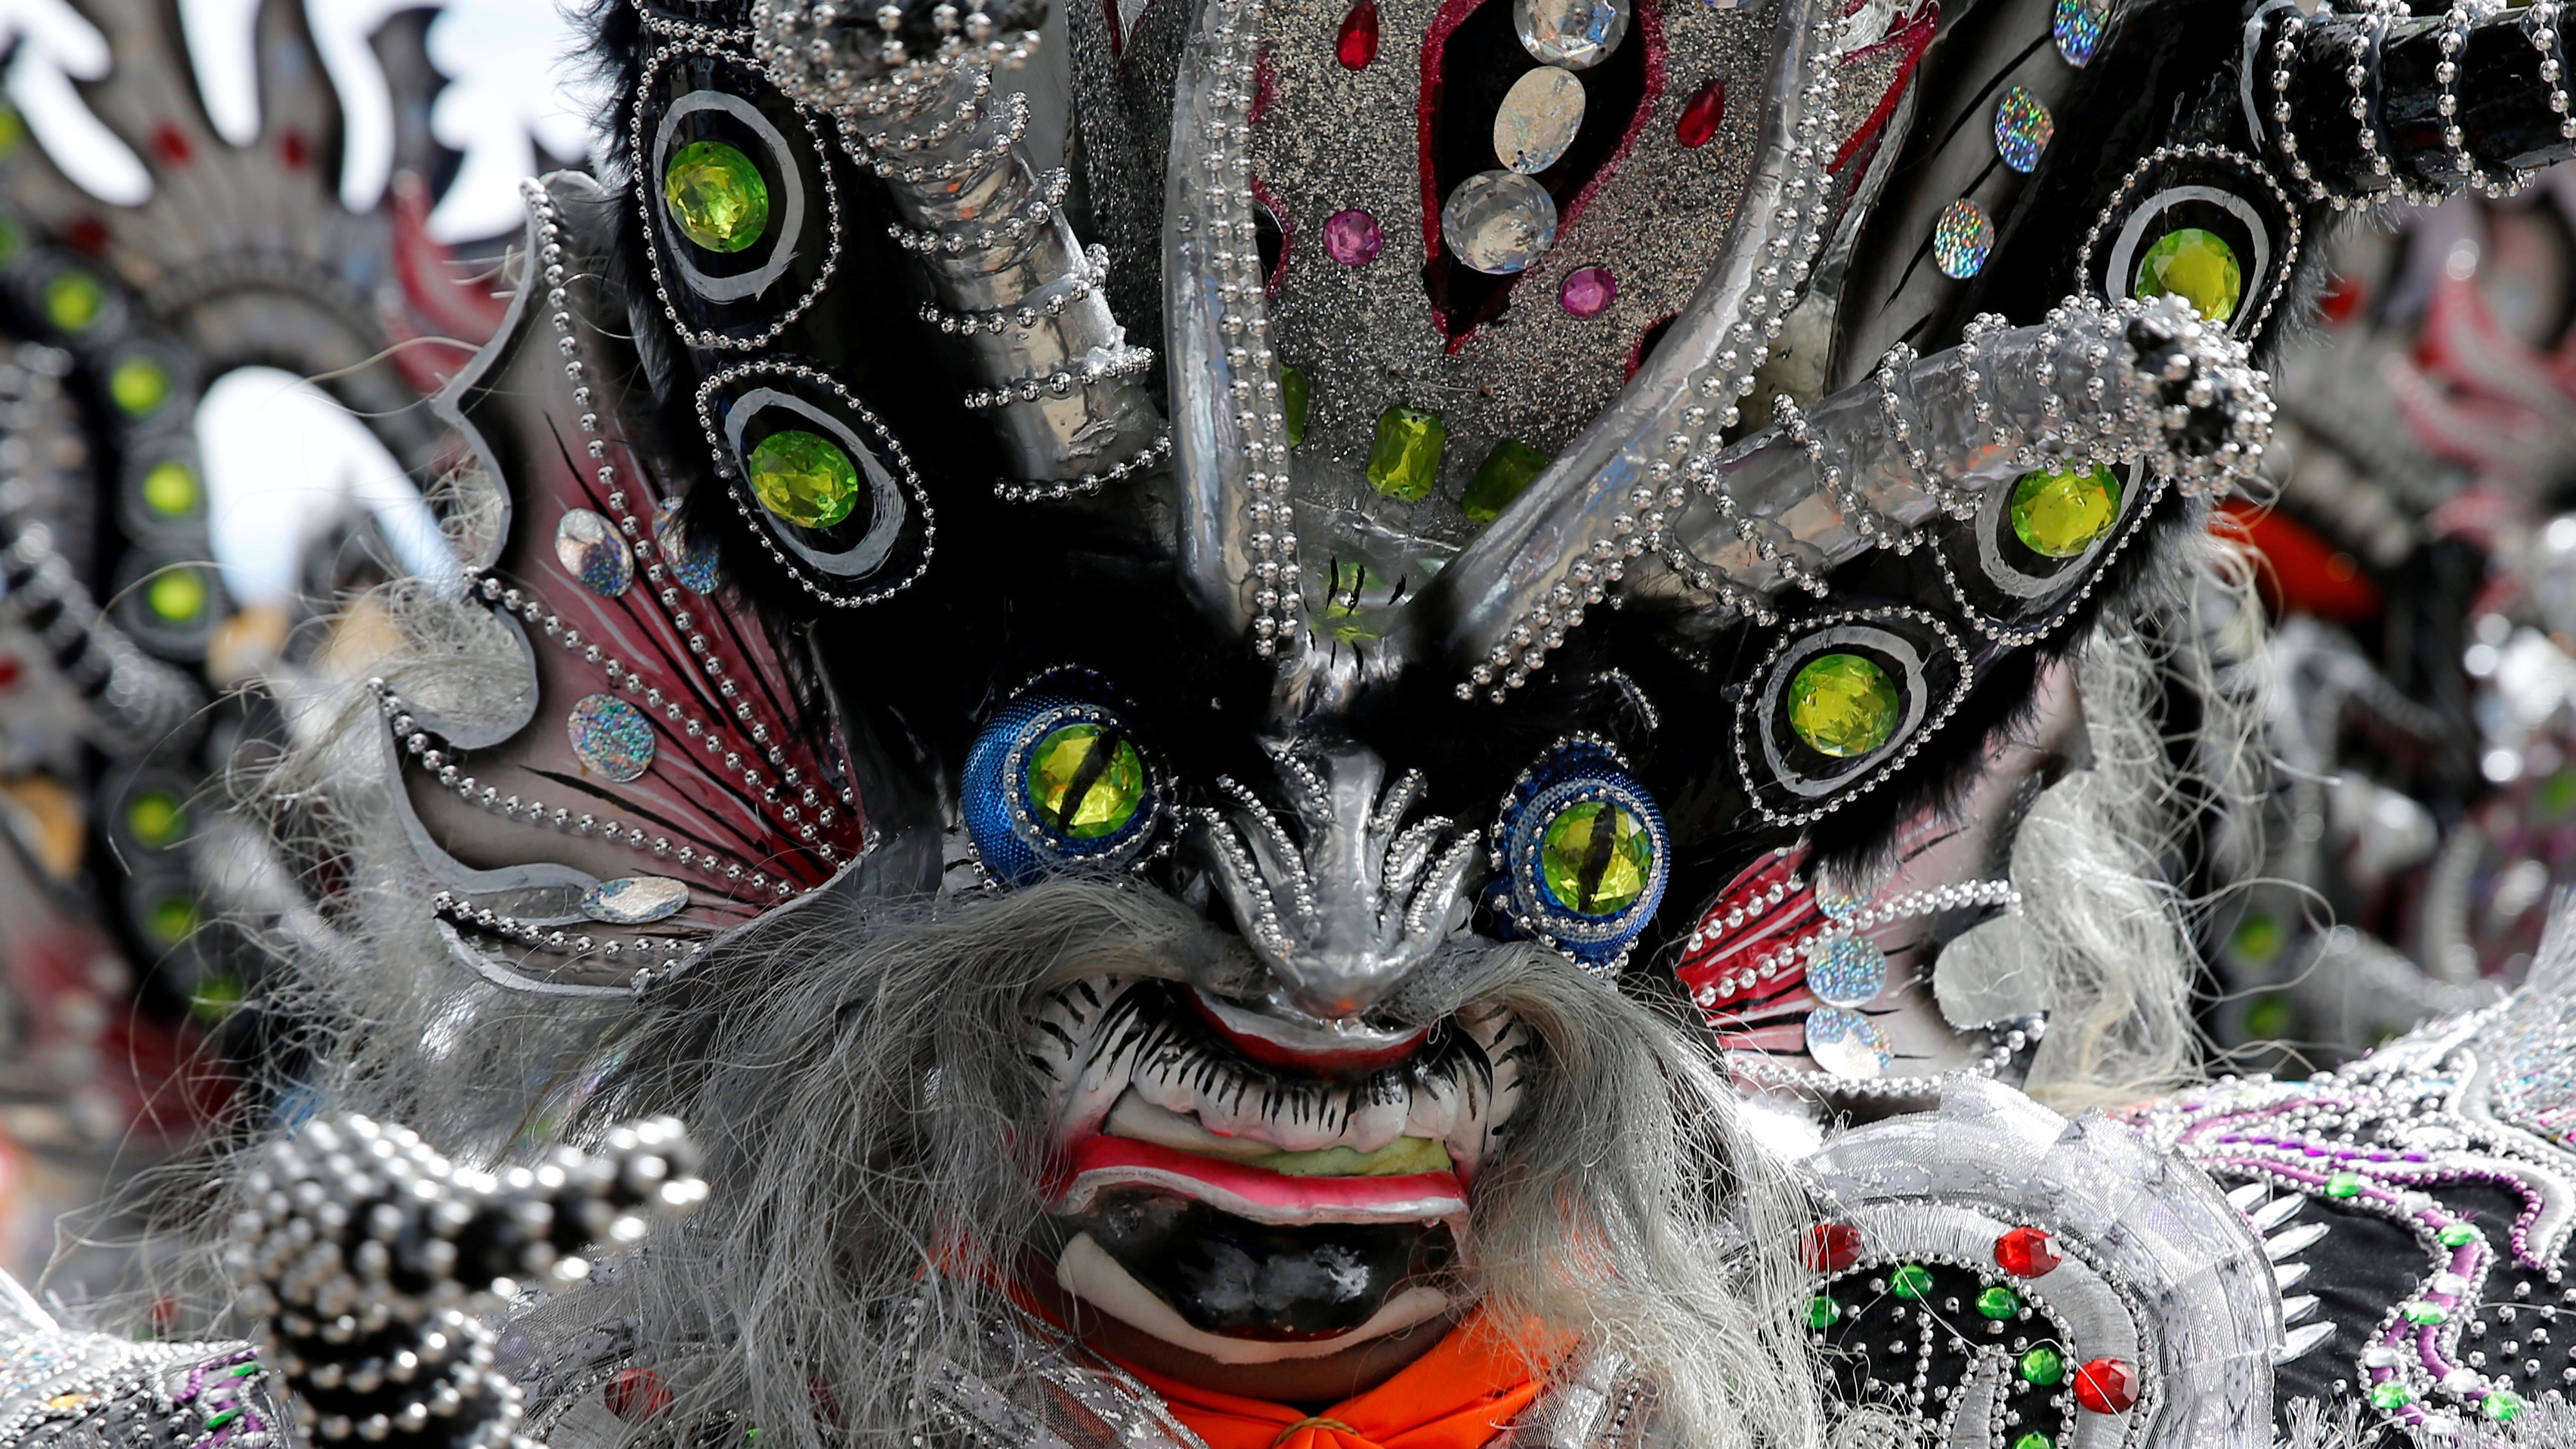 A mask of a devil is seen at the carnival parade in Oruro, Bolivia.